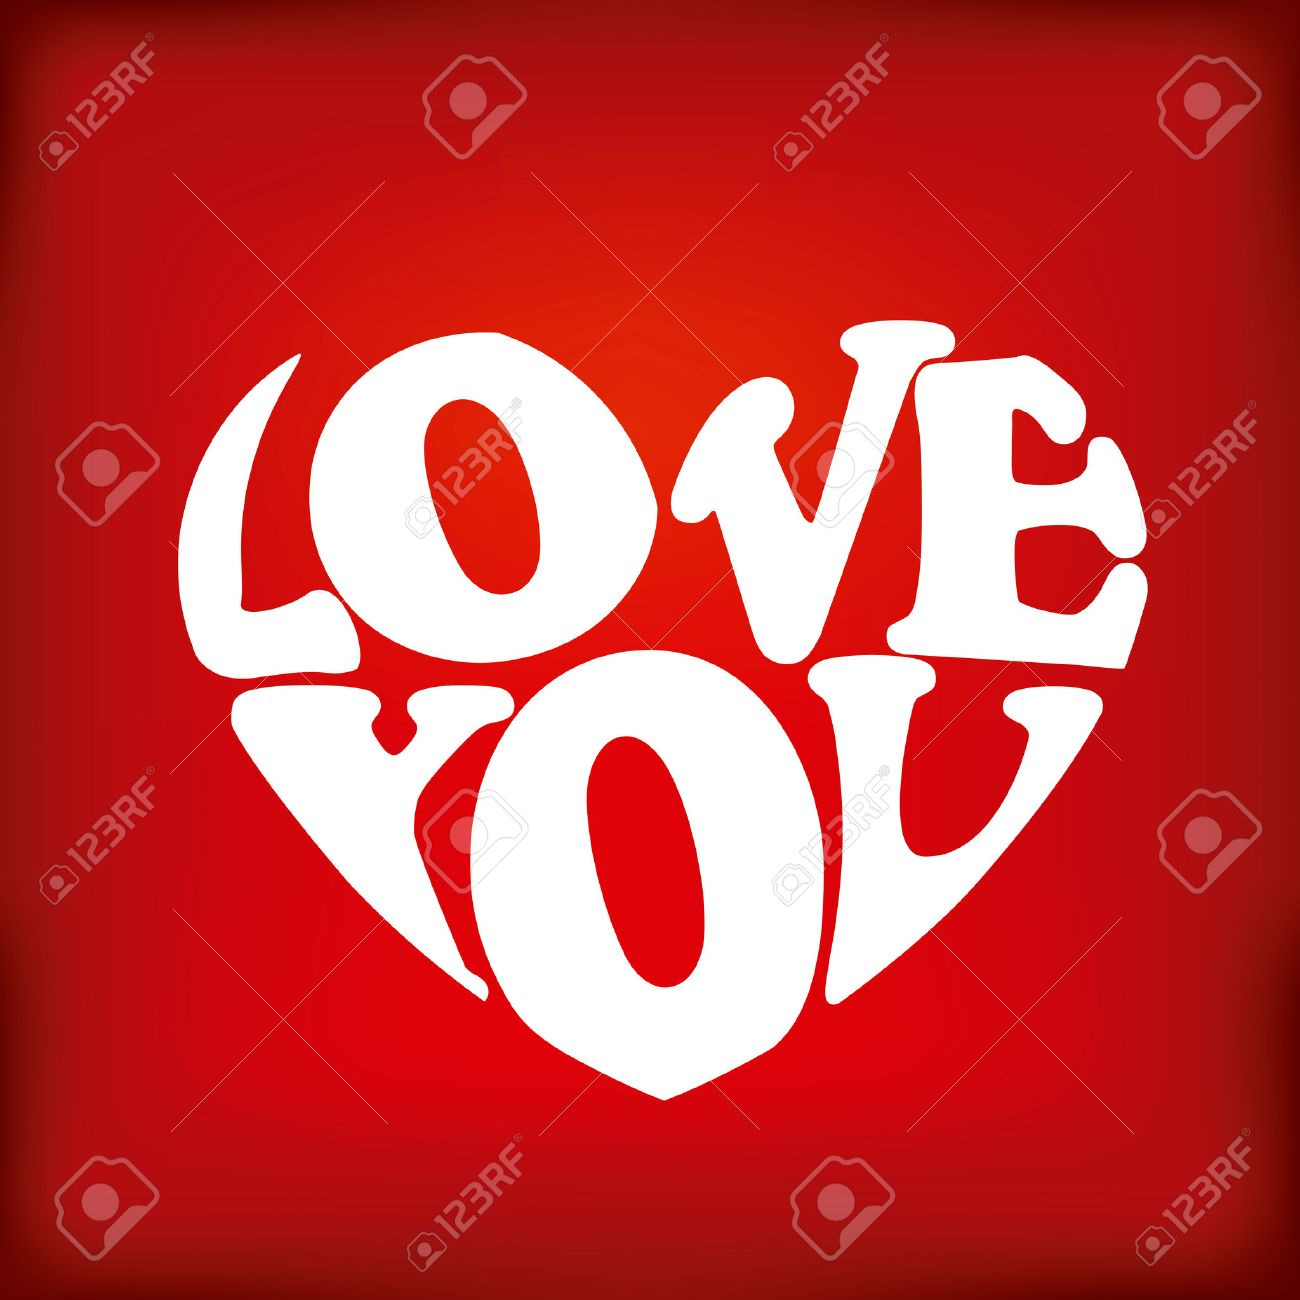 Love card with a big heart over red background vector illustration Stock Vector - 22453285